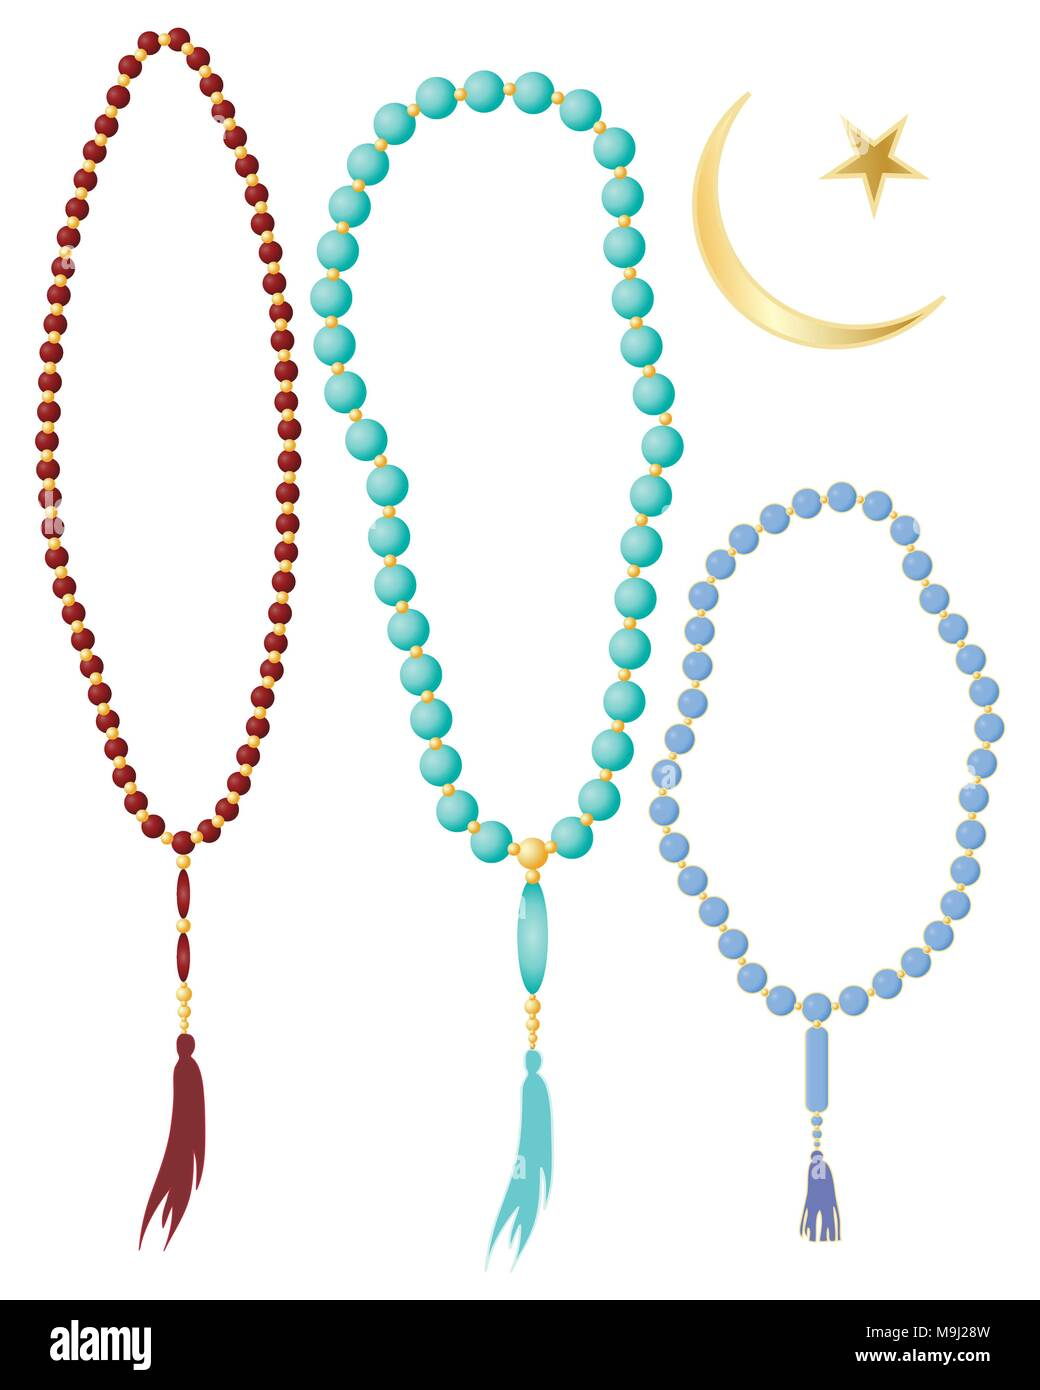 An Illustration Of Islamic Prayer Beads In Different Colors With